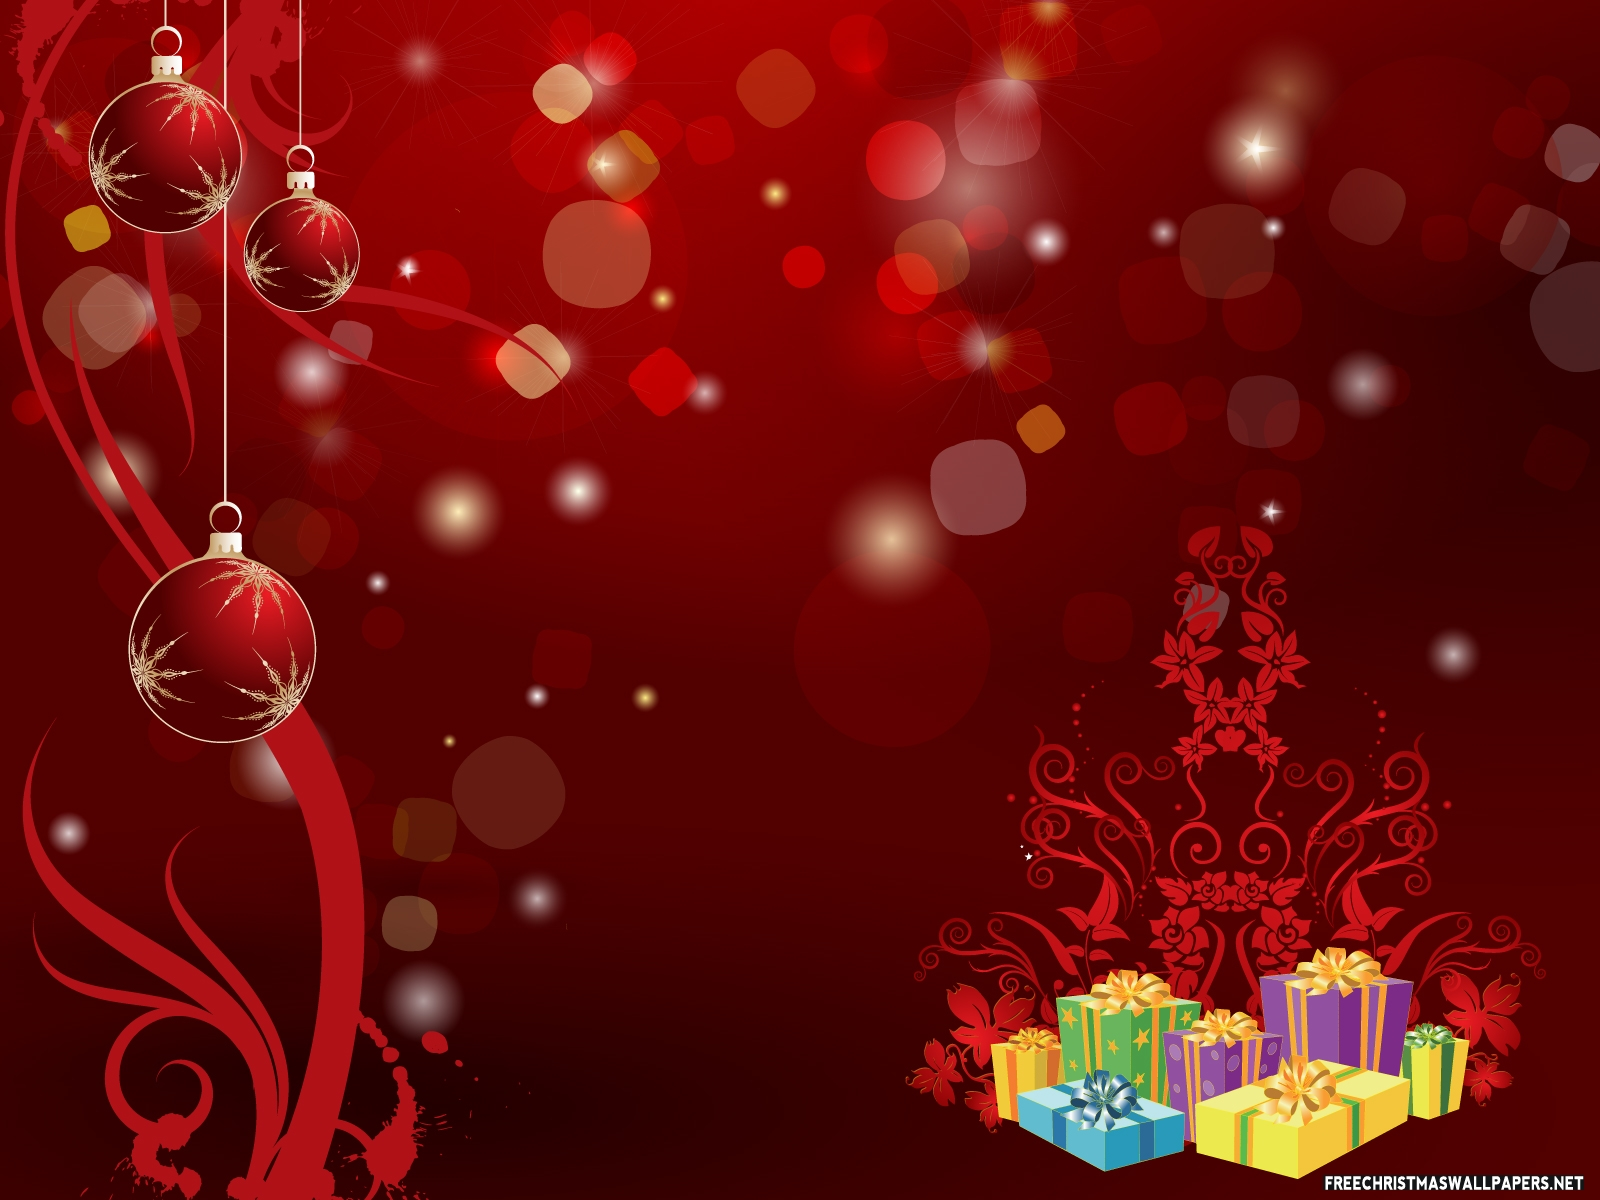 Top 24 Best Free Hd Christmas Wallpapers: 45 New Free Collection Of HD Christmas Wallpapers